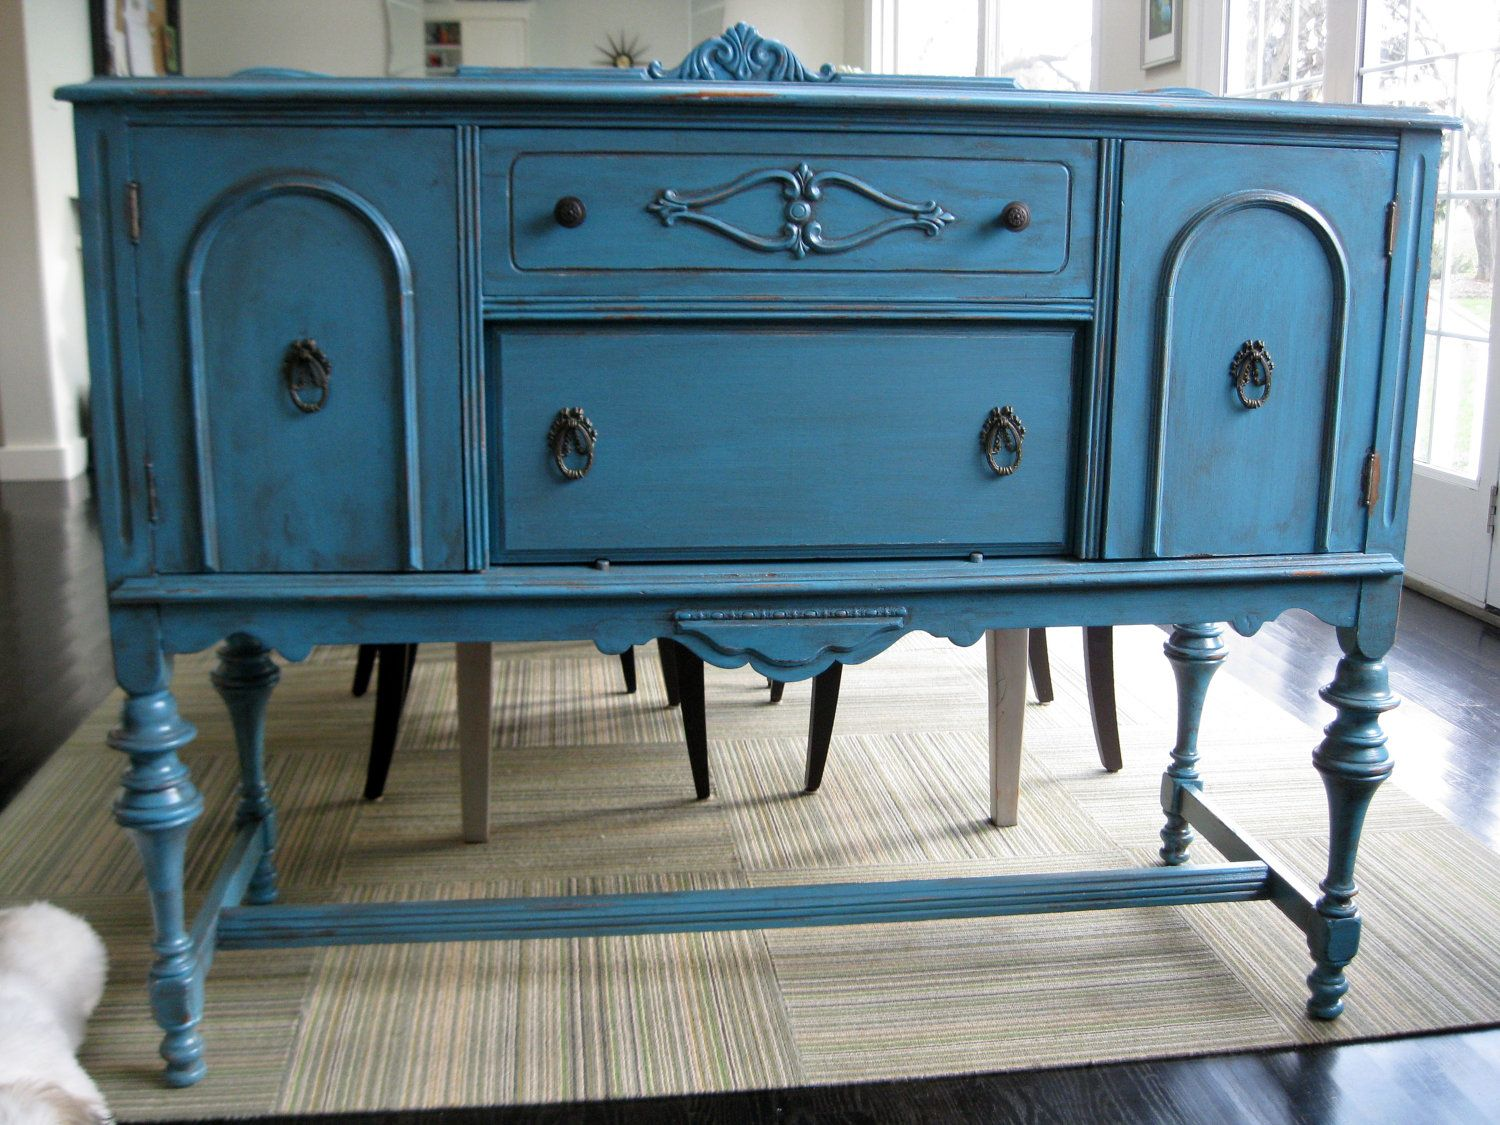 Antique Sideboard Server Buffet Teal Blue by